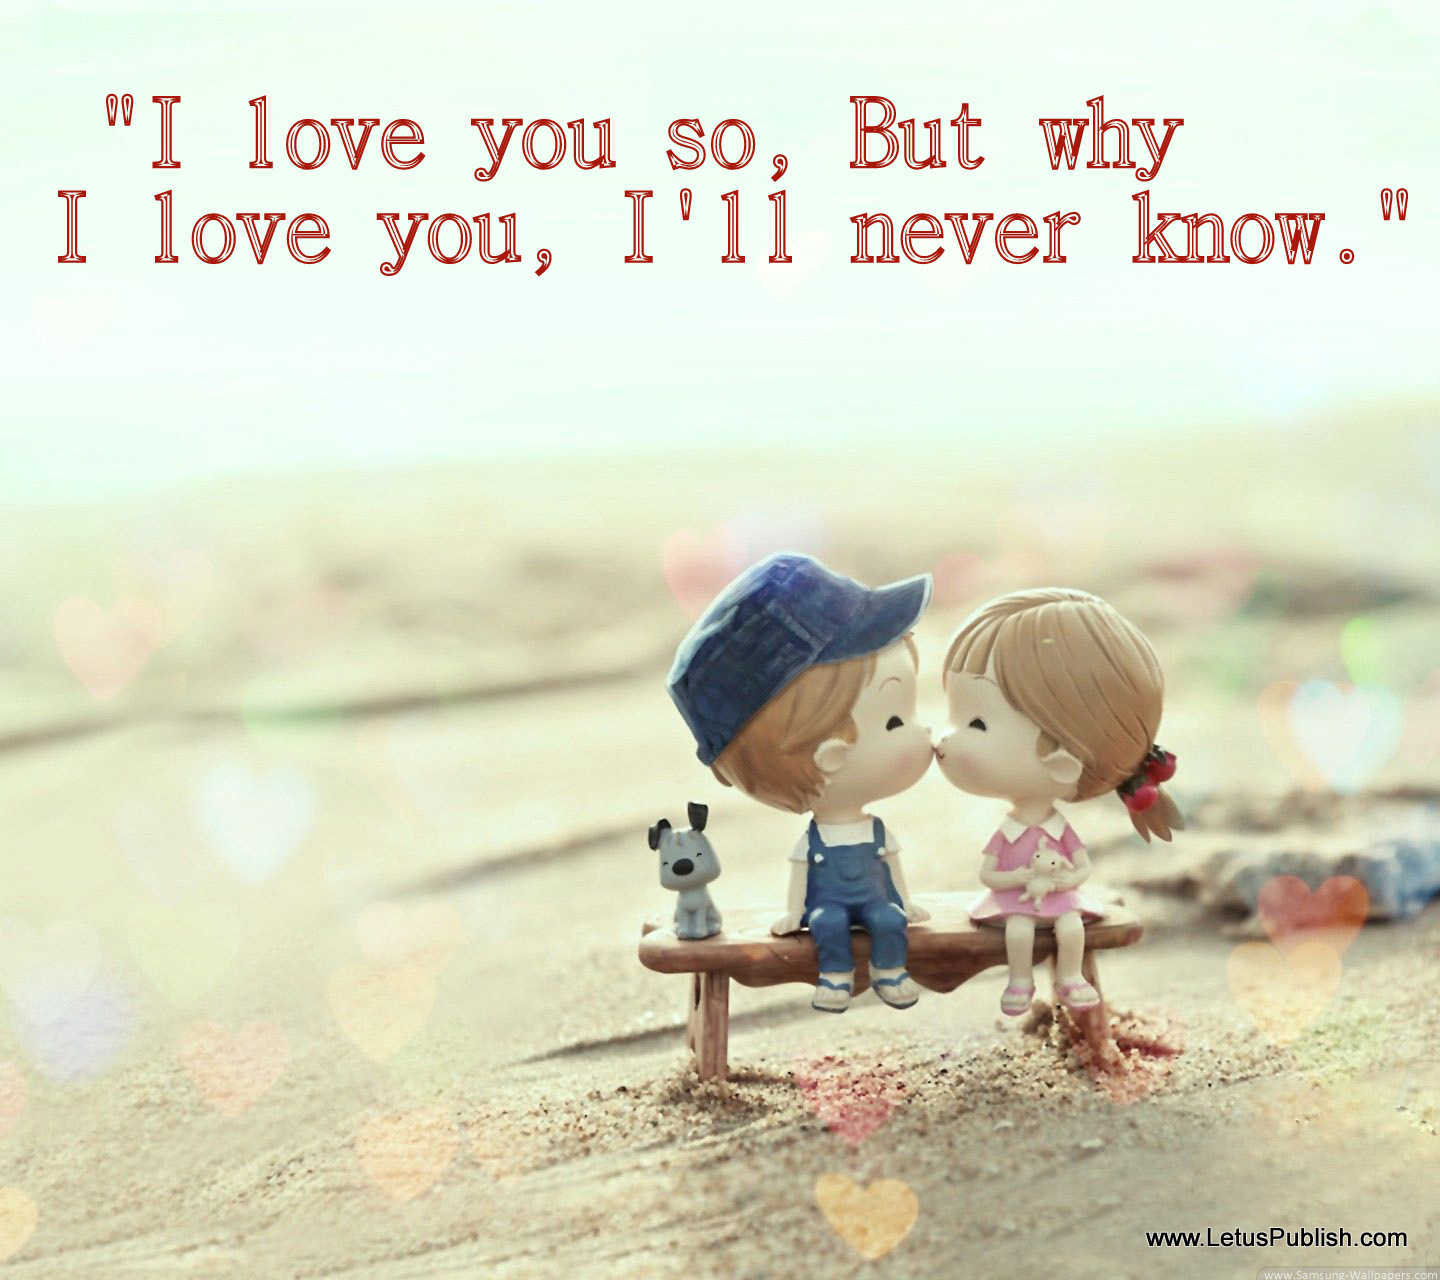 cute Love Wallpaper With Thought : Beautiful Romantic Love HD Wallpapers For couples - Let Us Publish